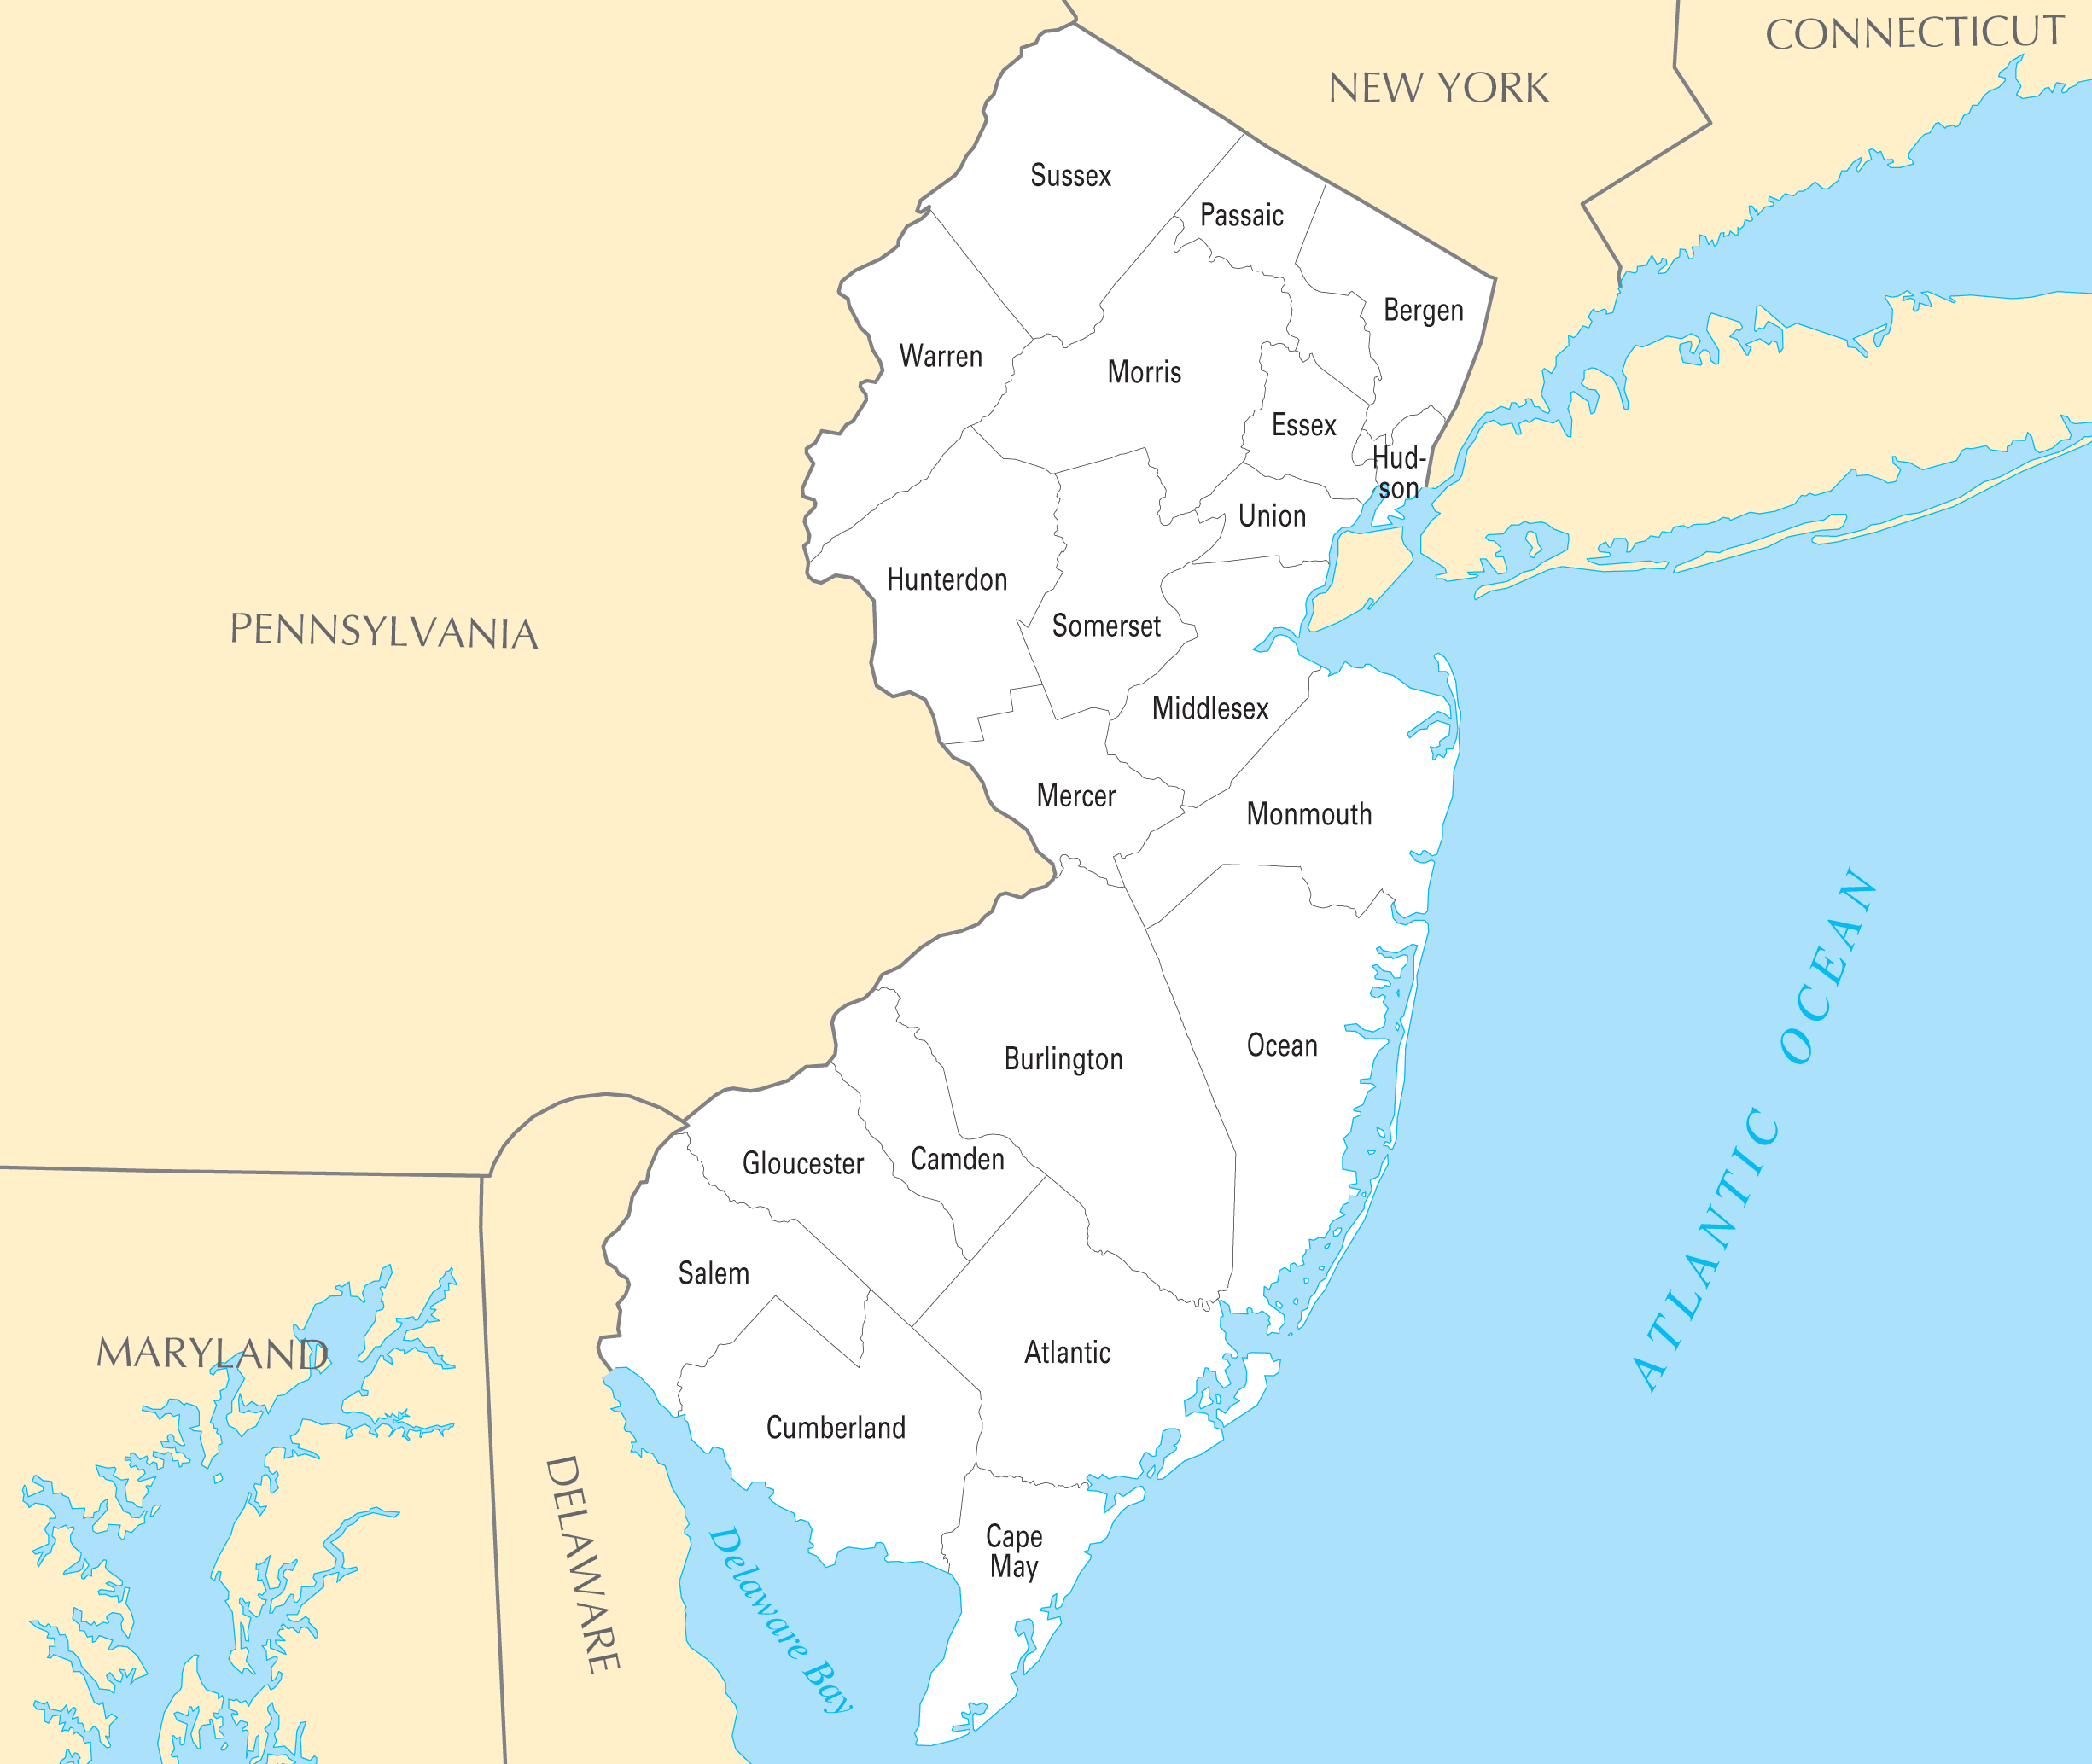 New Jersey County Map Mapsofnet - County map of new jersey